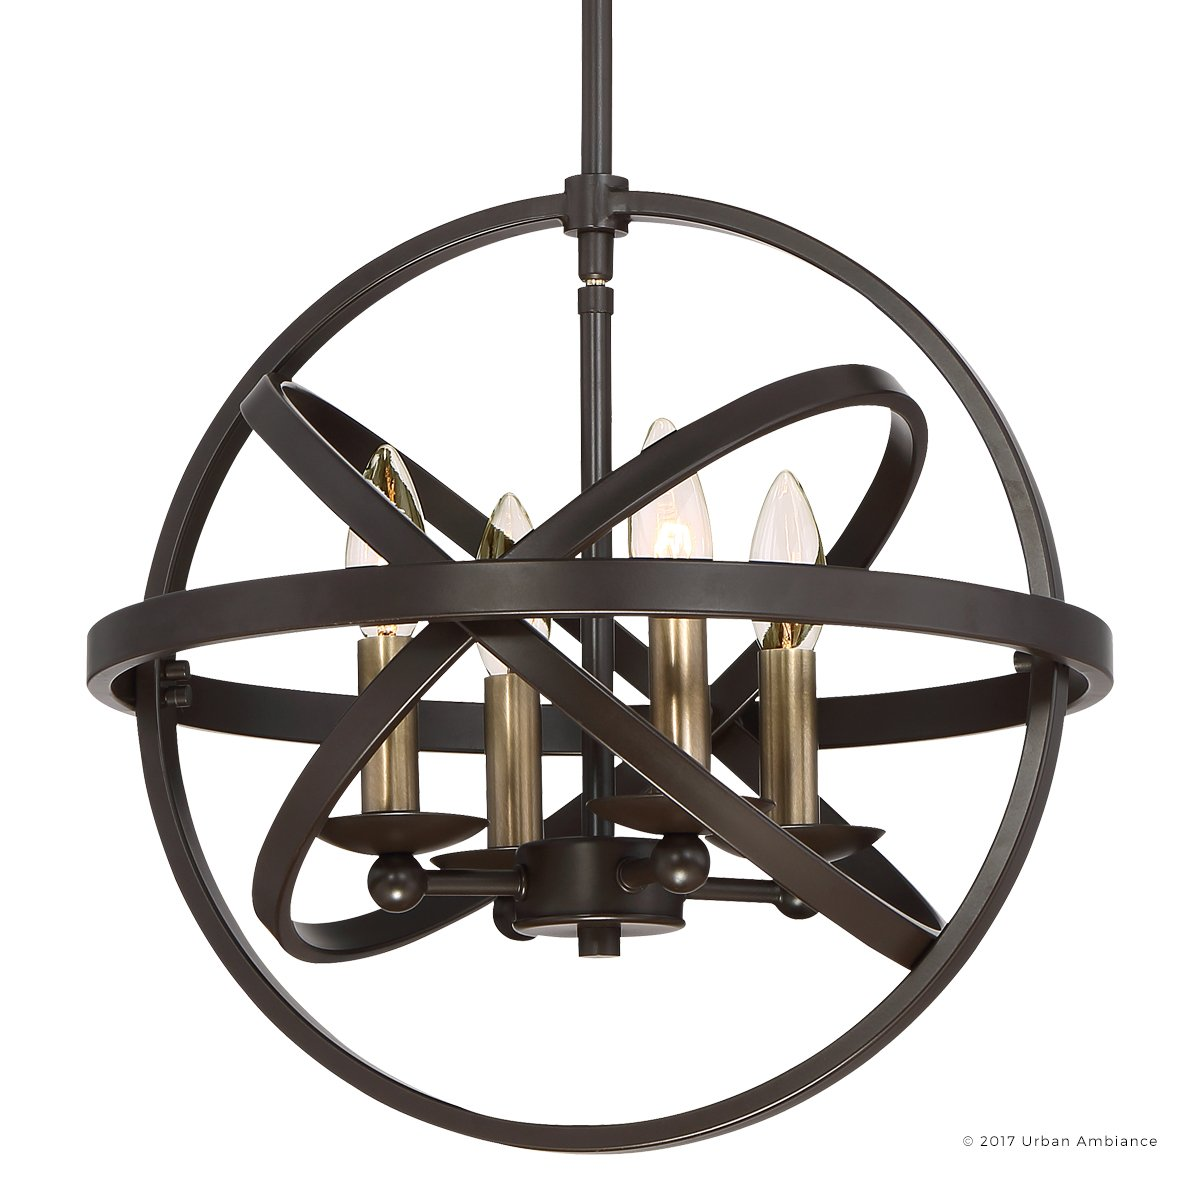 Luxury Vintage Chandelier, Medium Size: 14.25''H x 15''W, with Transitional Style Elements, Sphere Design, Brass Accented Elegant Estate Bronze Finish and Open Circles Shade, UQL2303 by Urban Ambiance